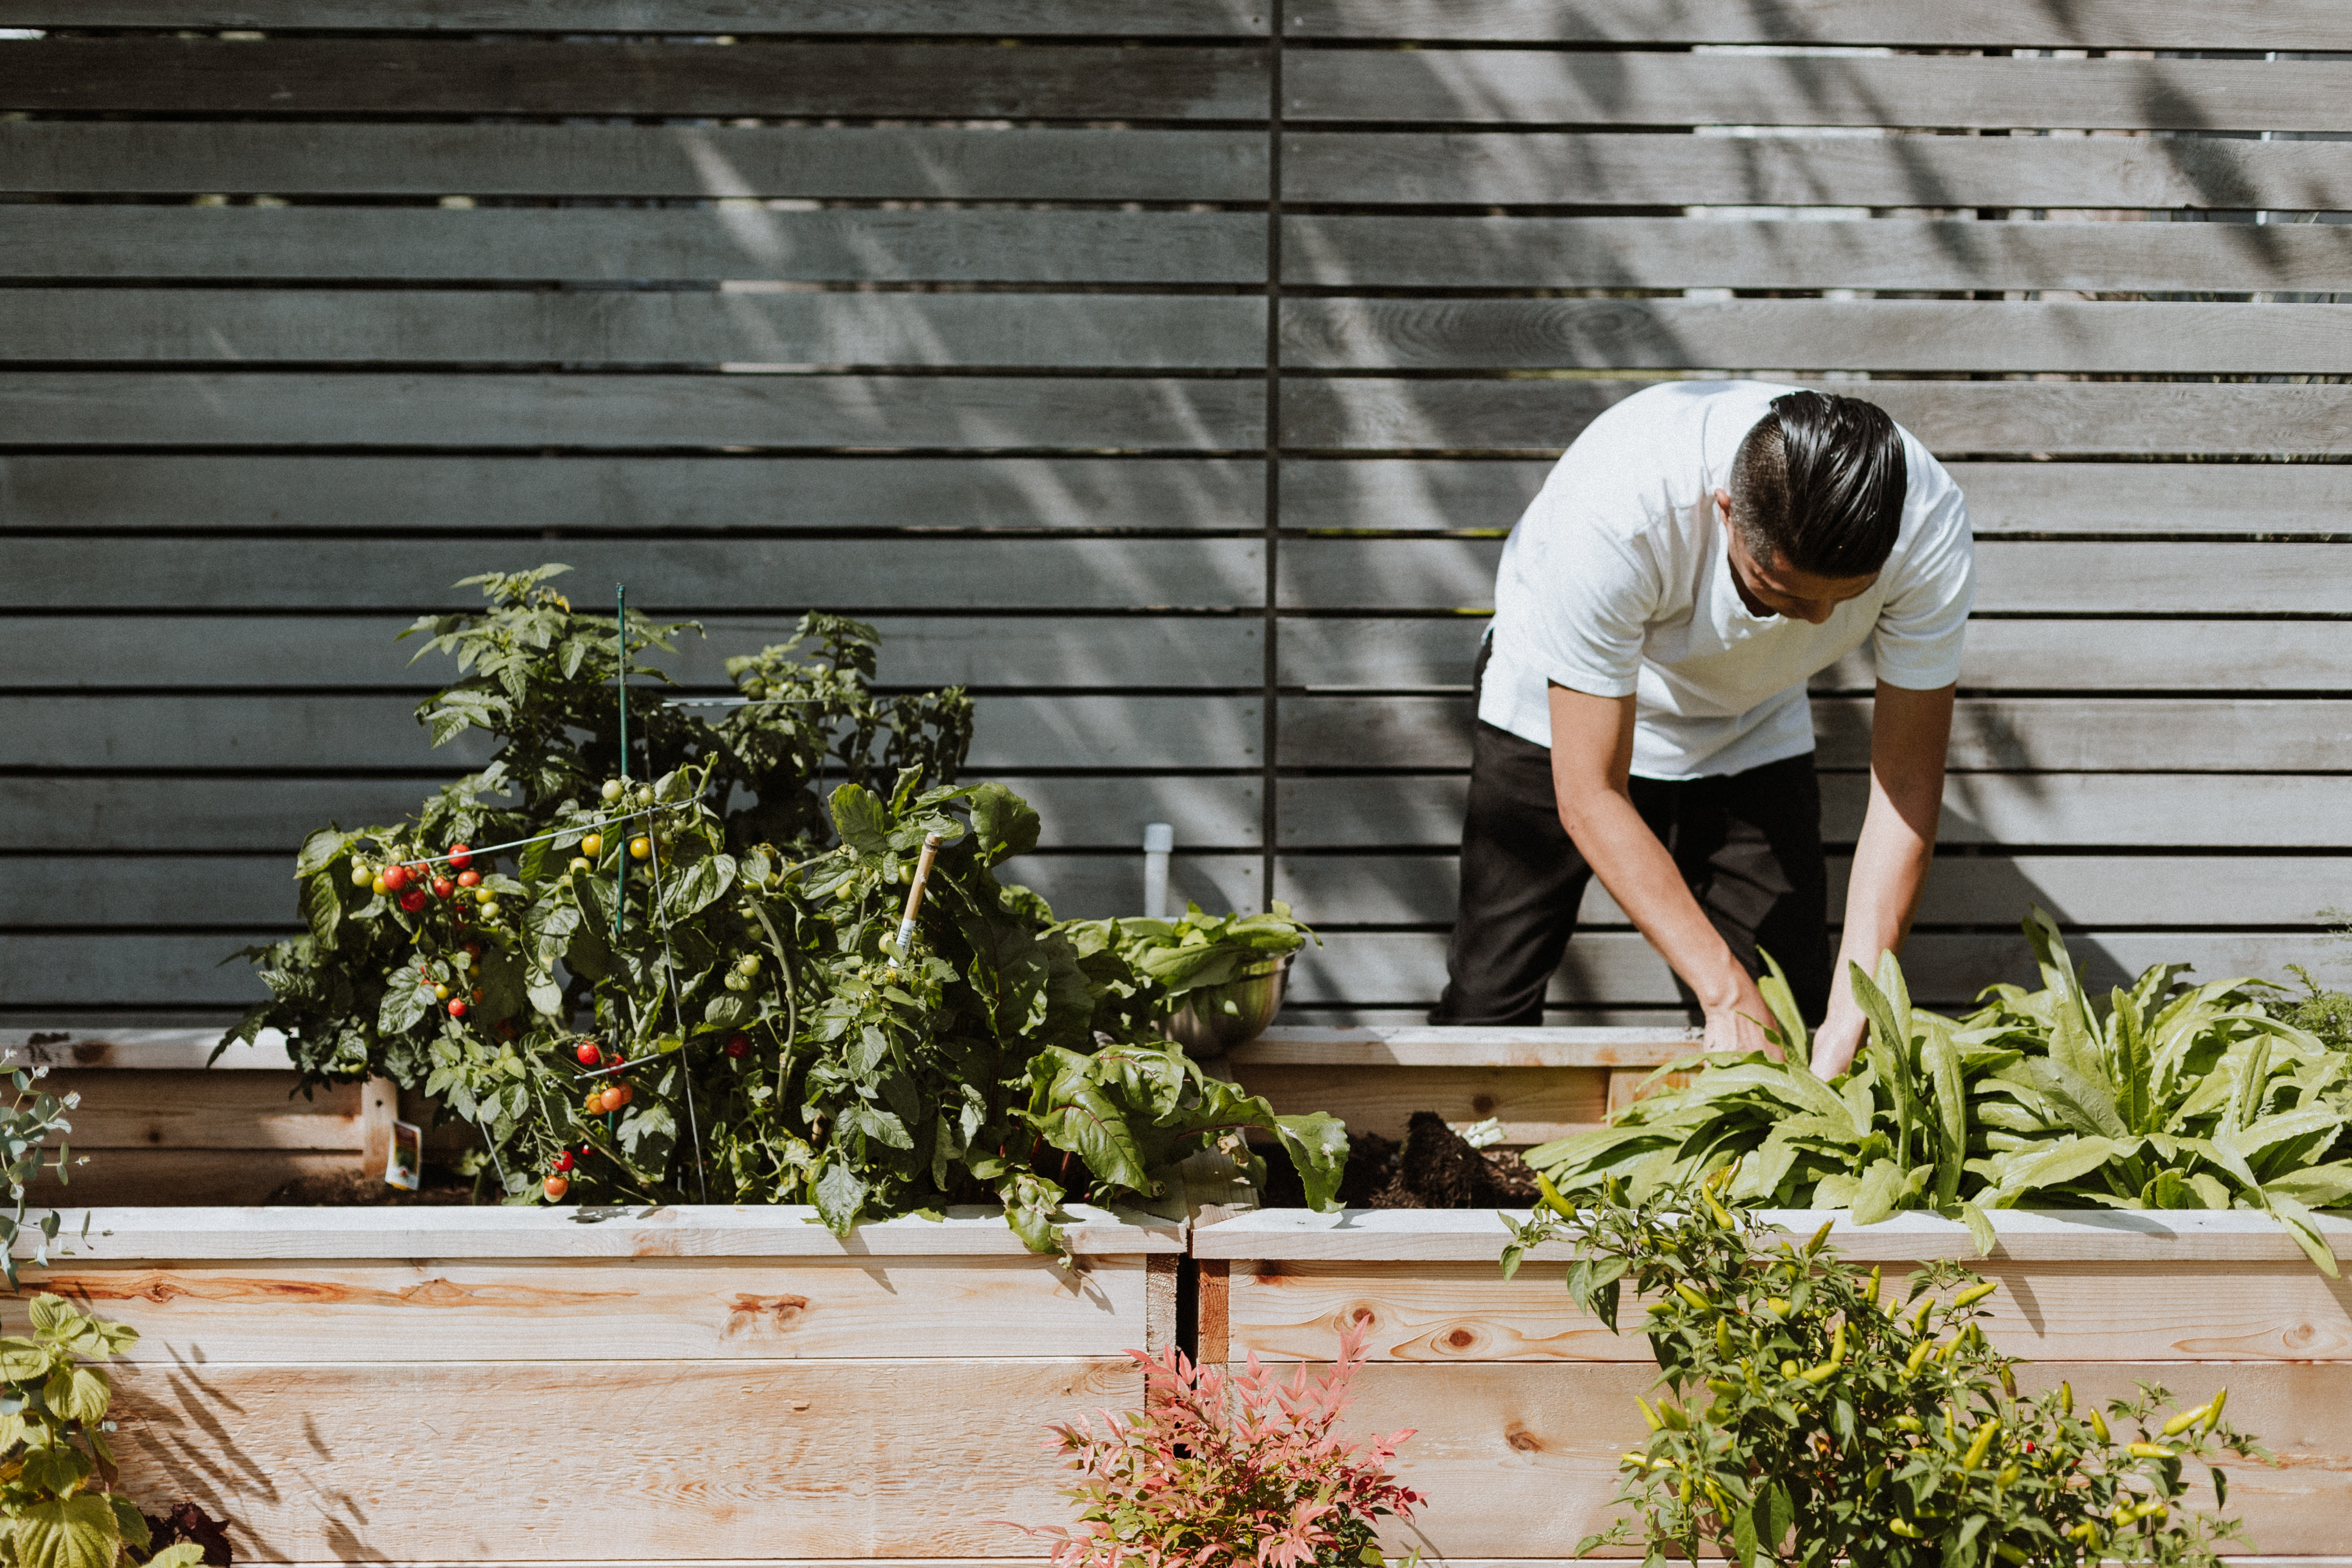 gardening your way to sustainability